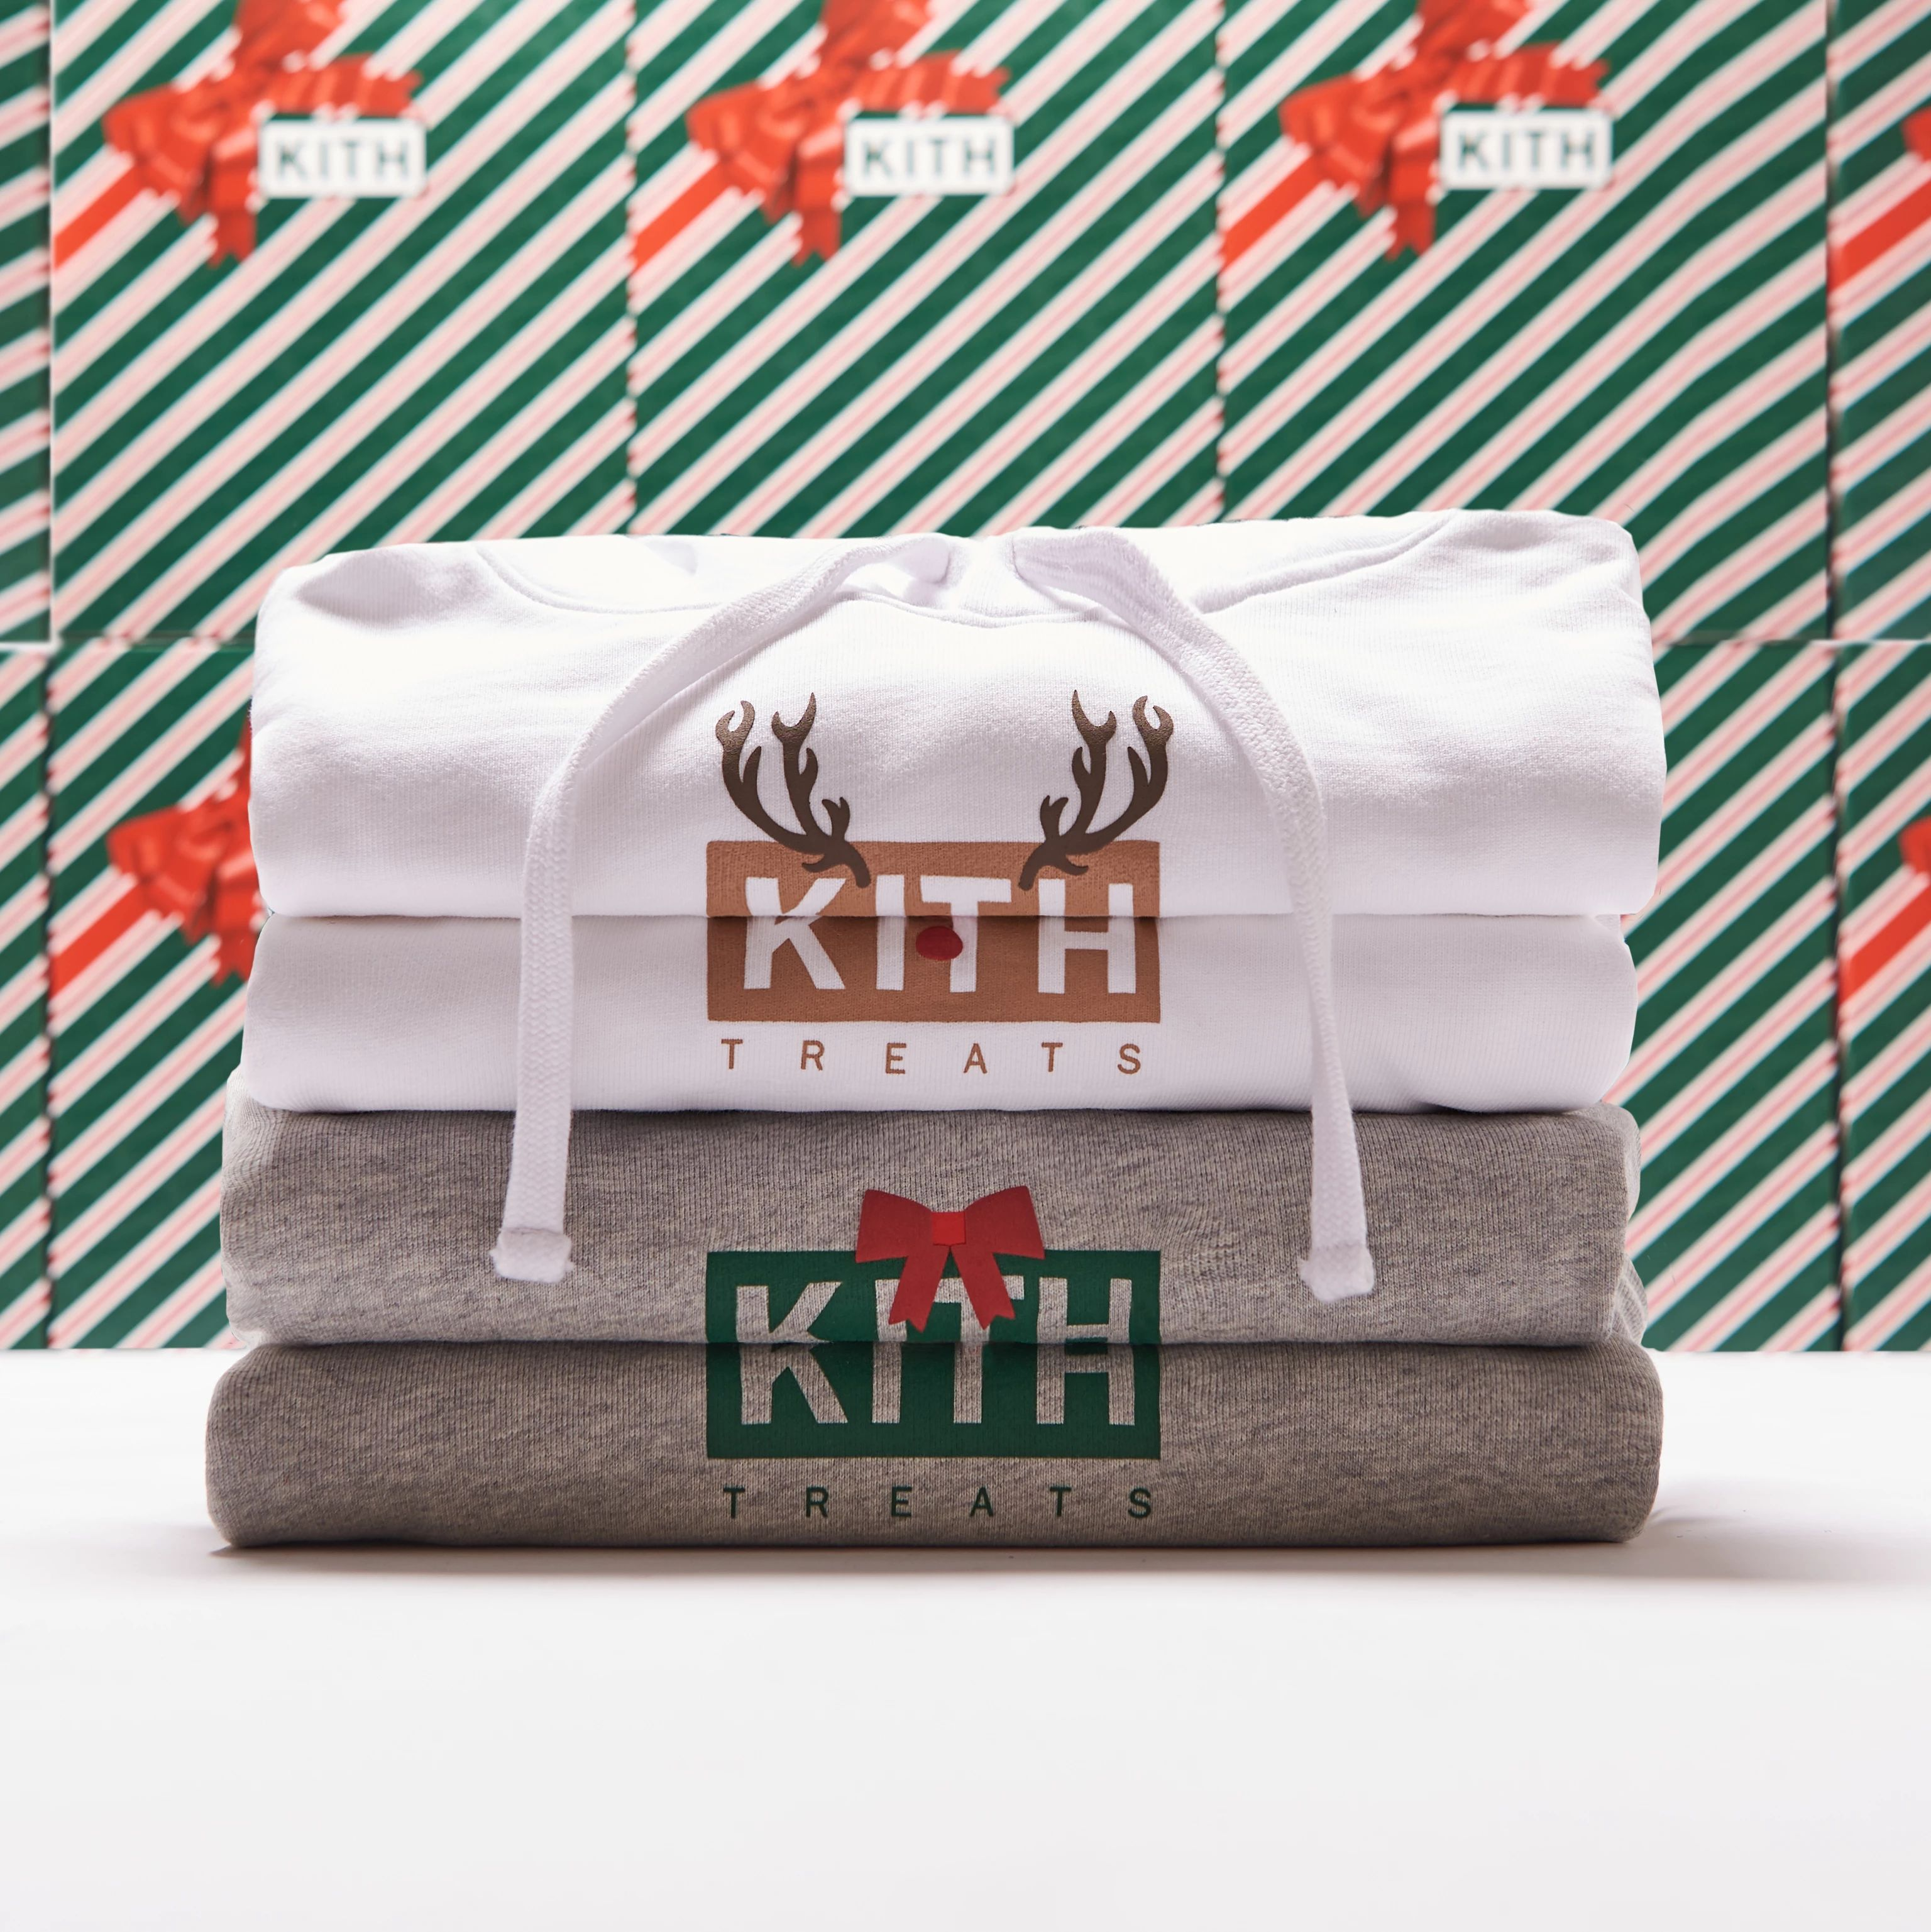 kith-treats-holiday-capsule-item-release-20191215